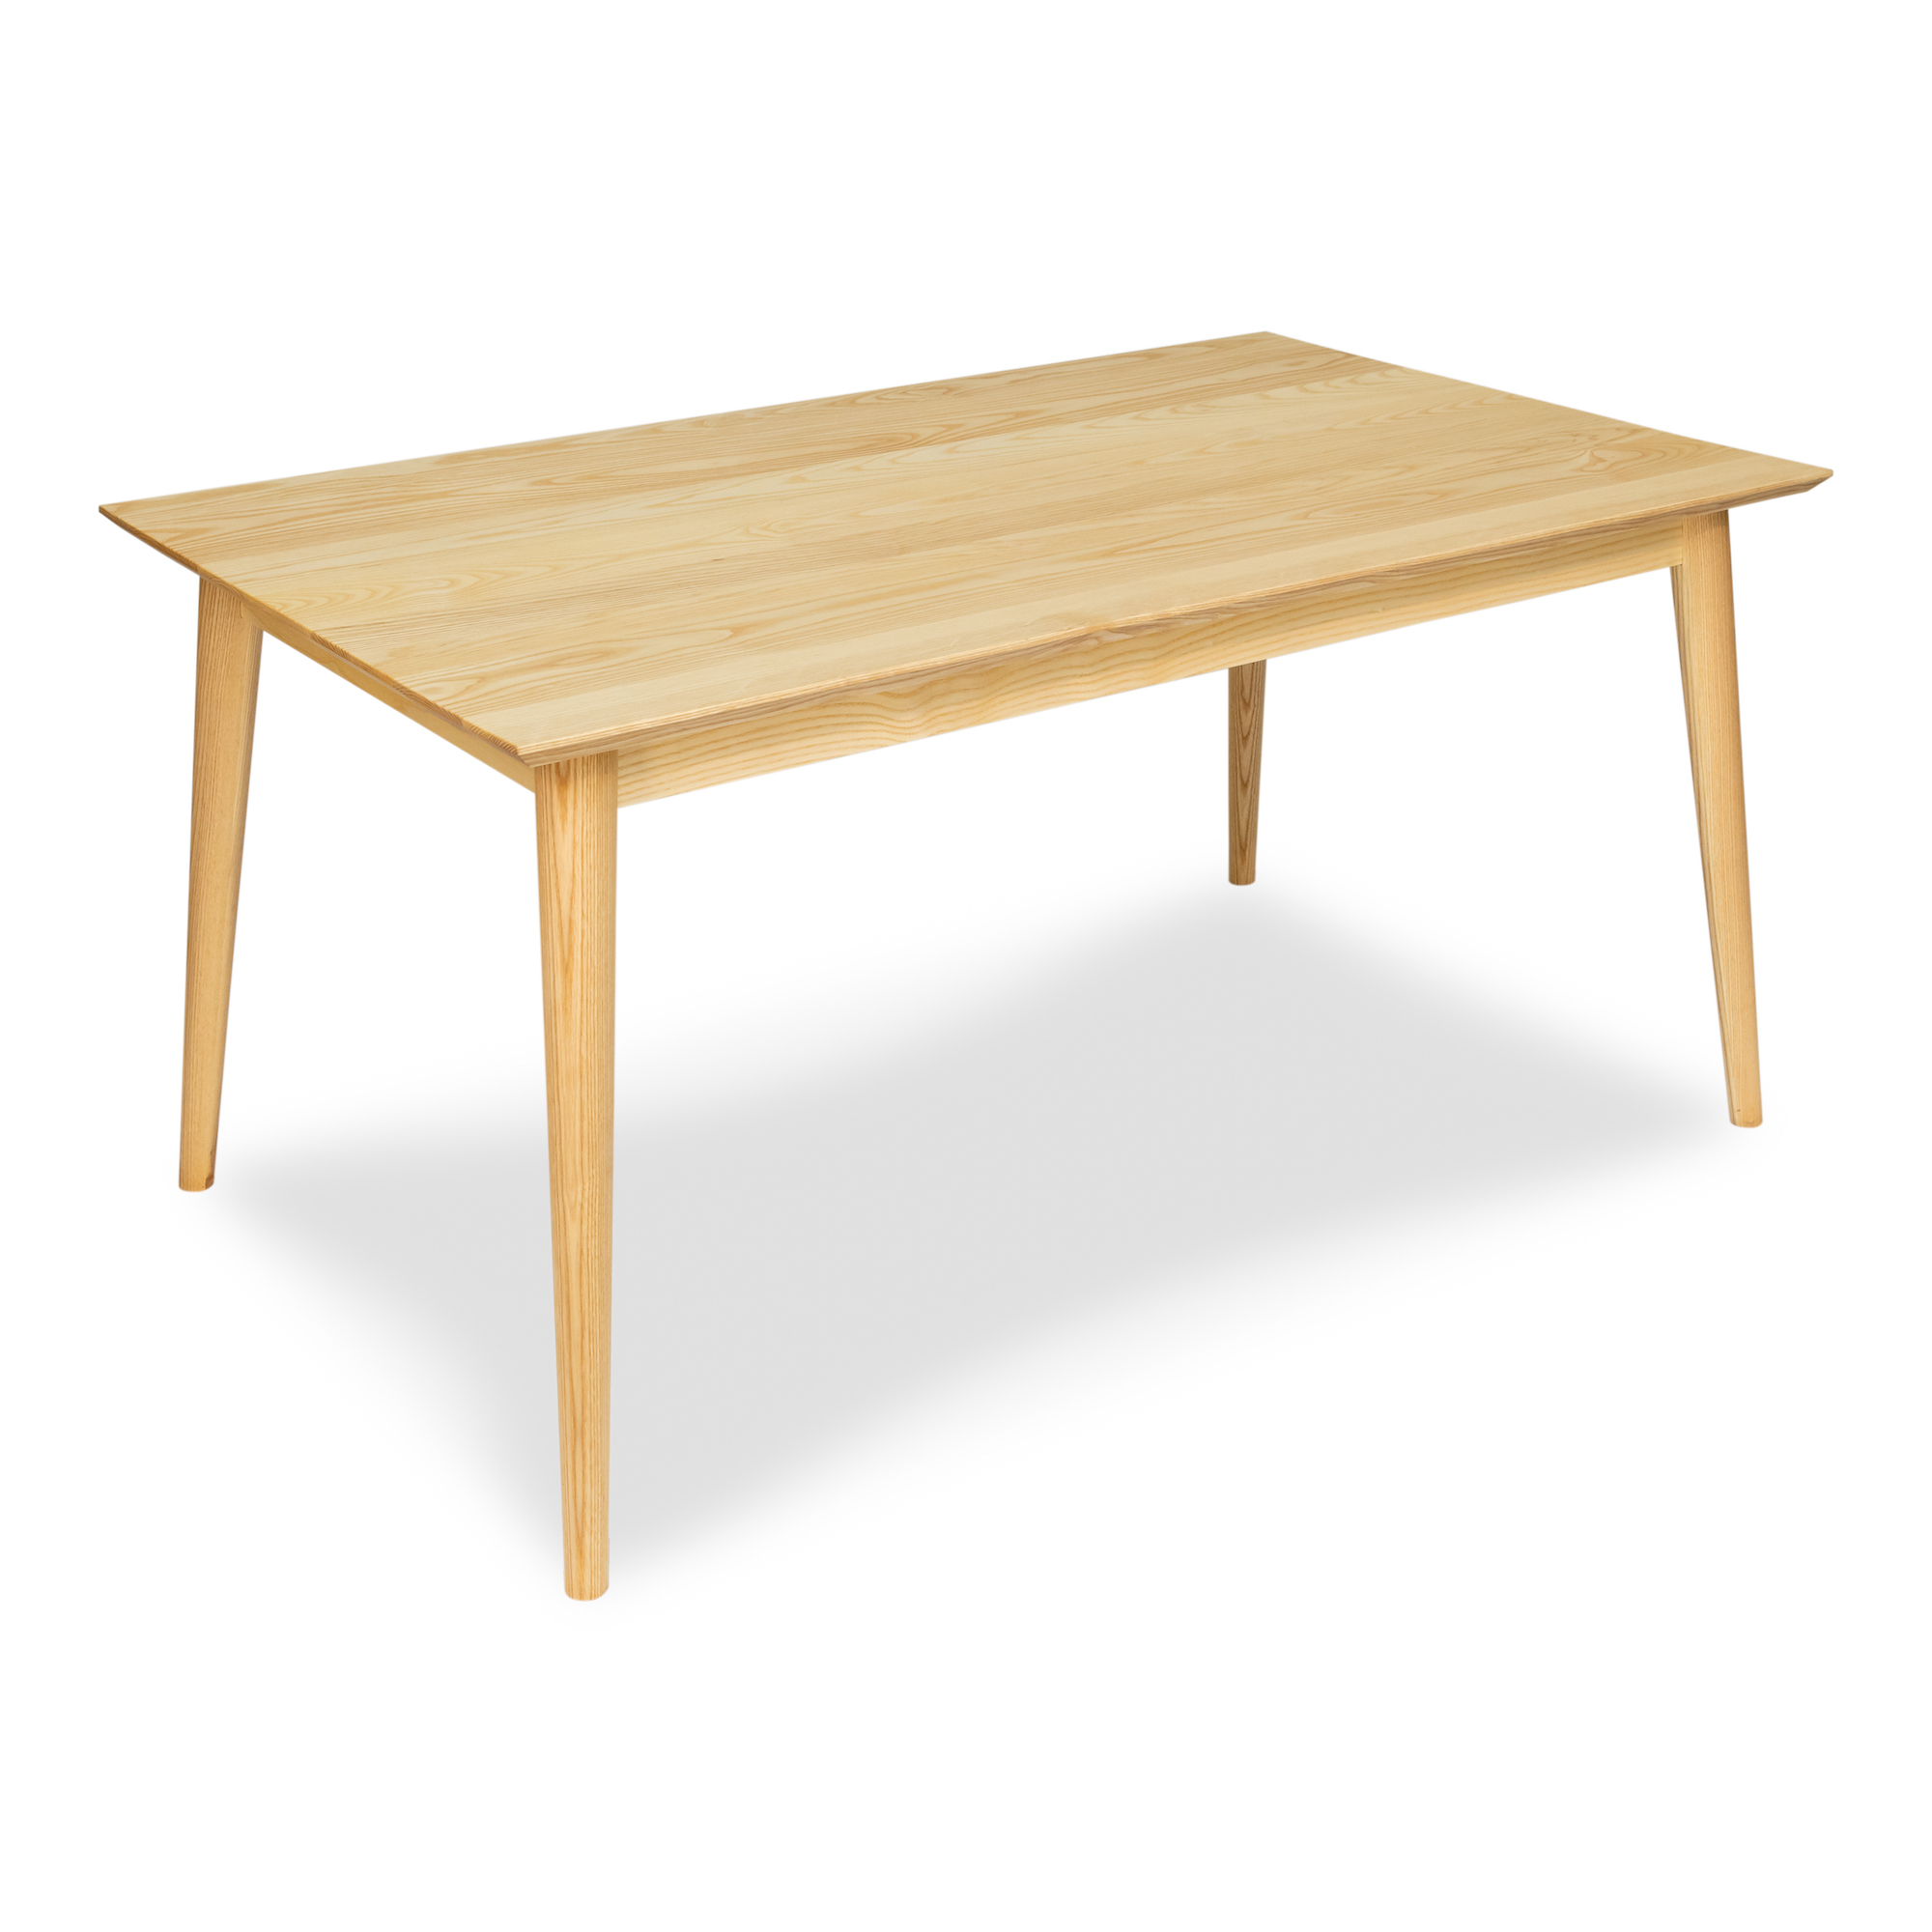 Woodcraft_Furniture_NorwayTable-3-2-1.jpg